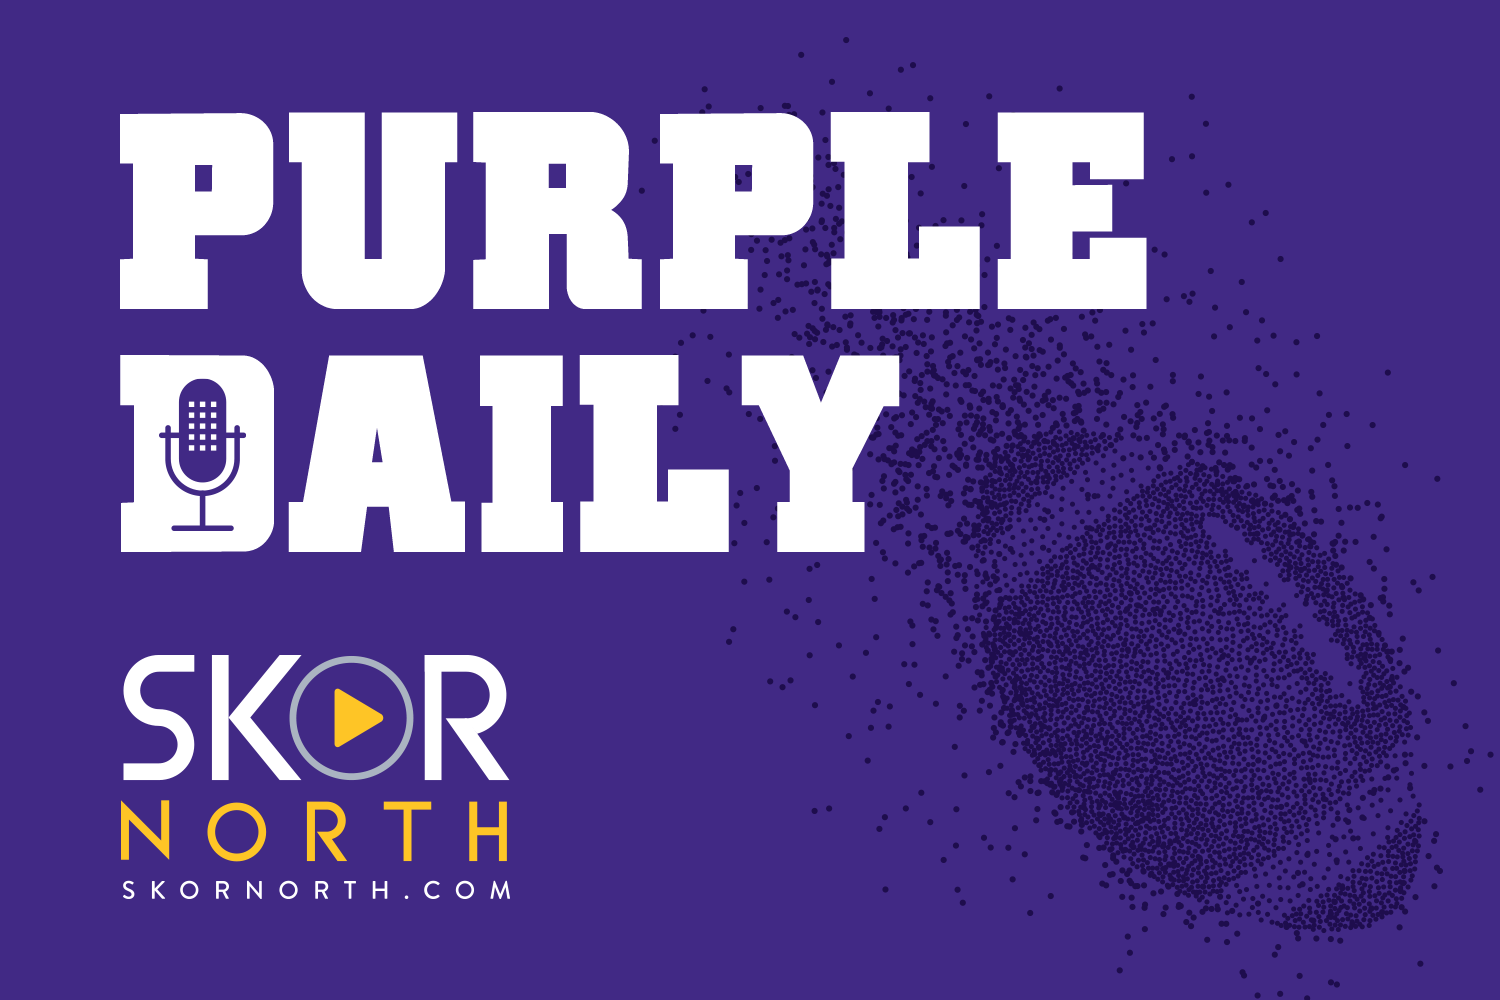 SkorNorth PurpleDaily 1500x1000 V4.'